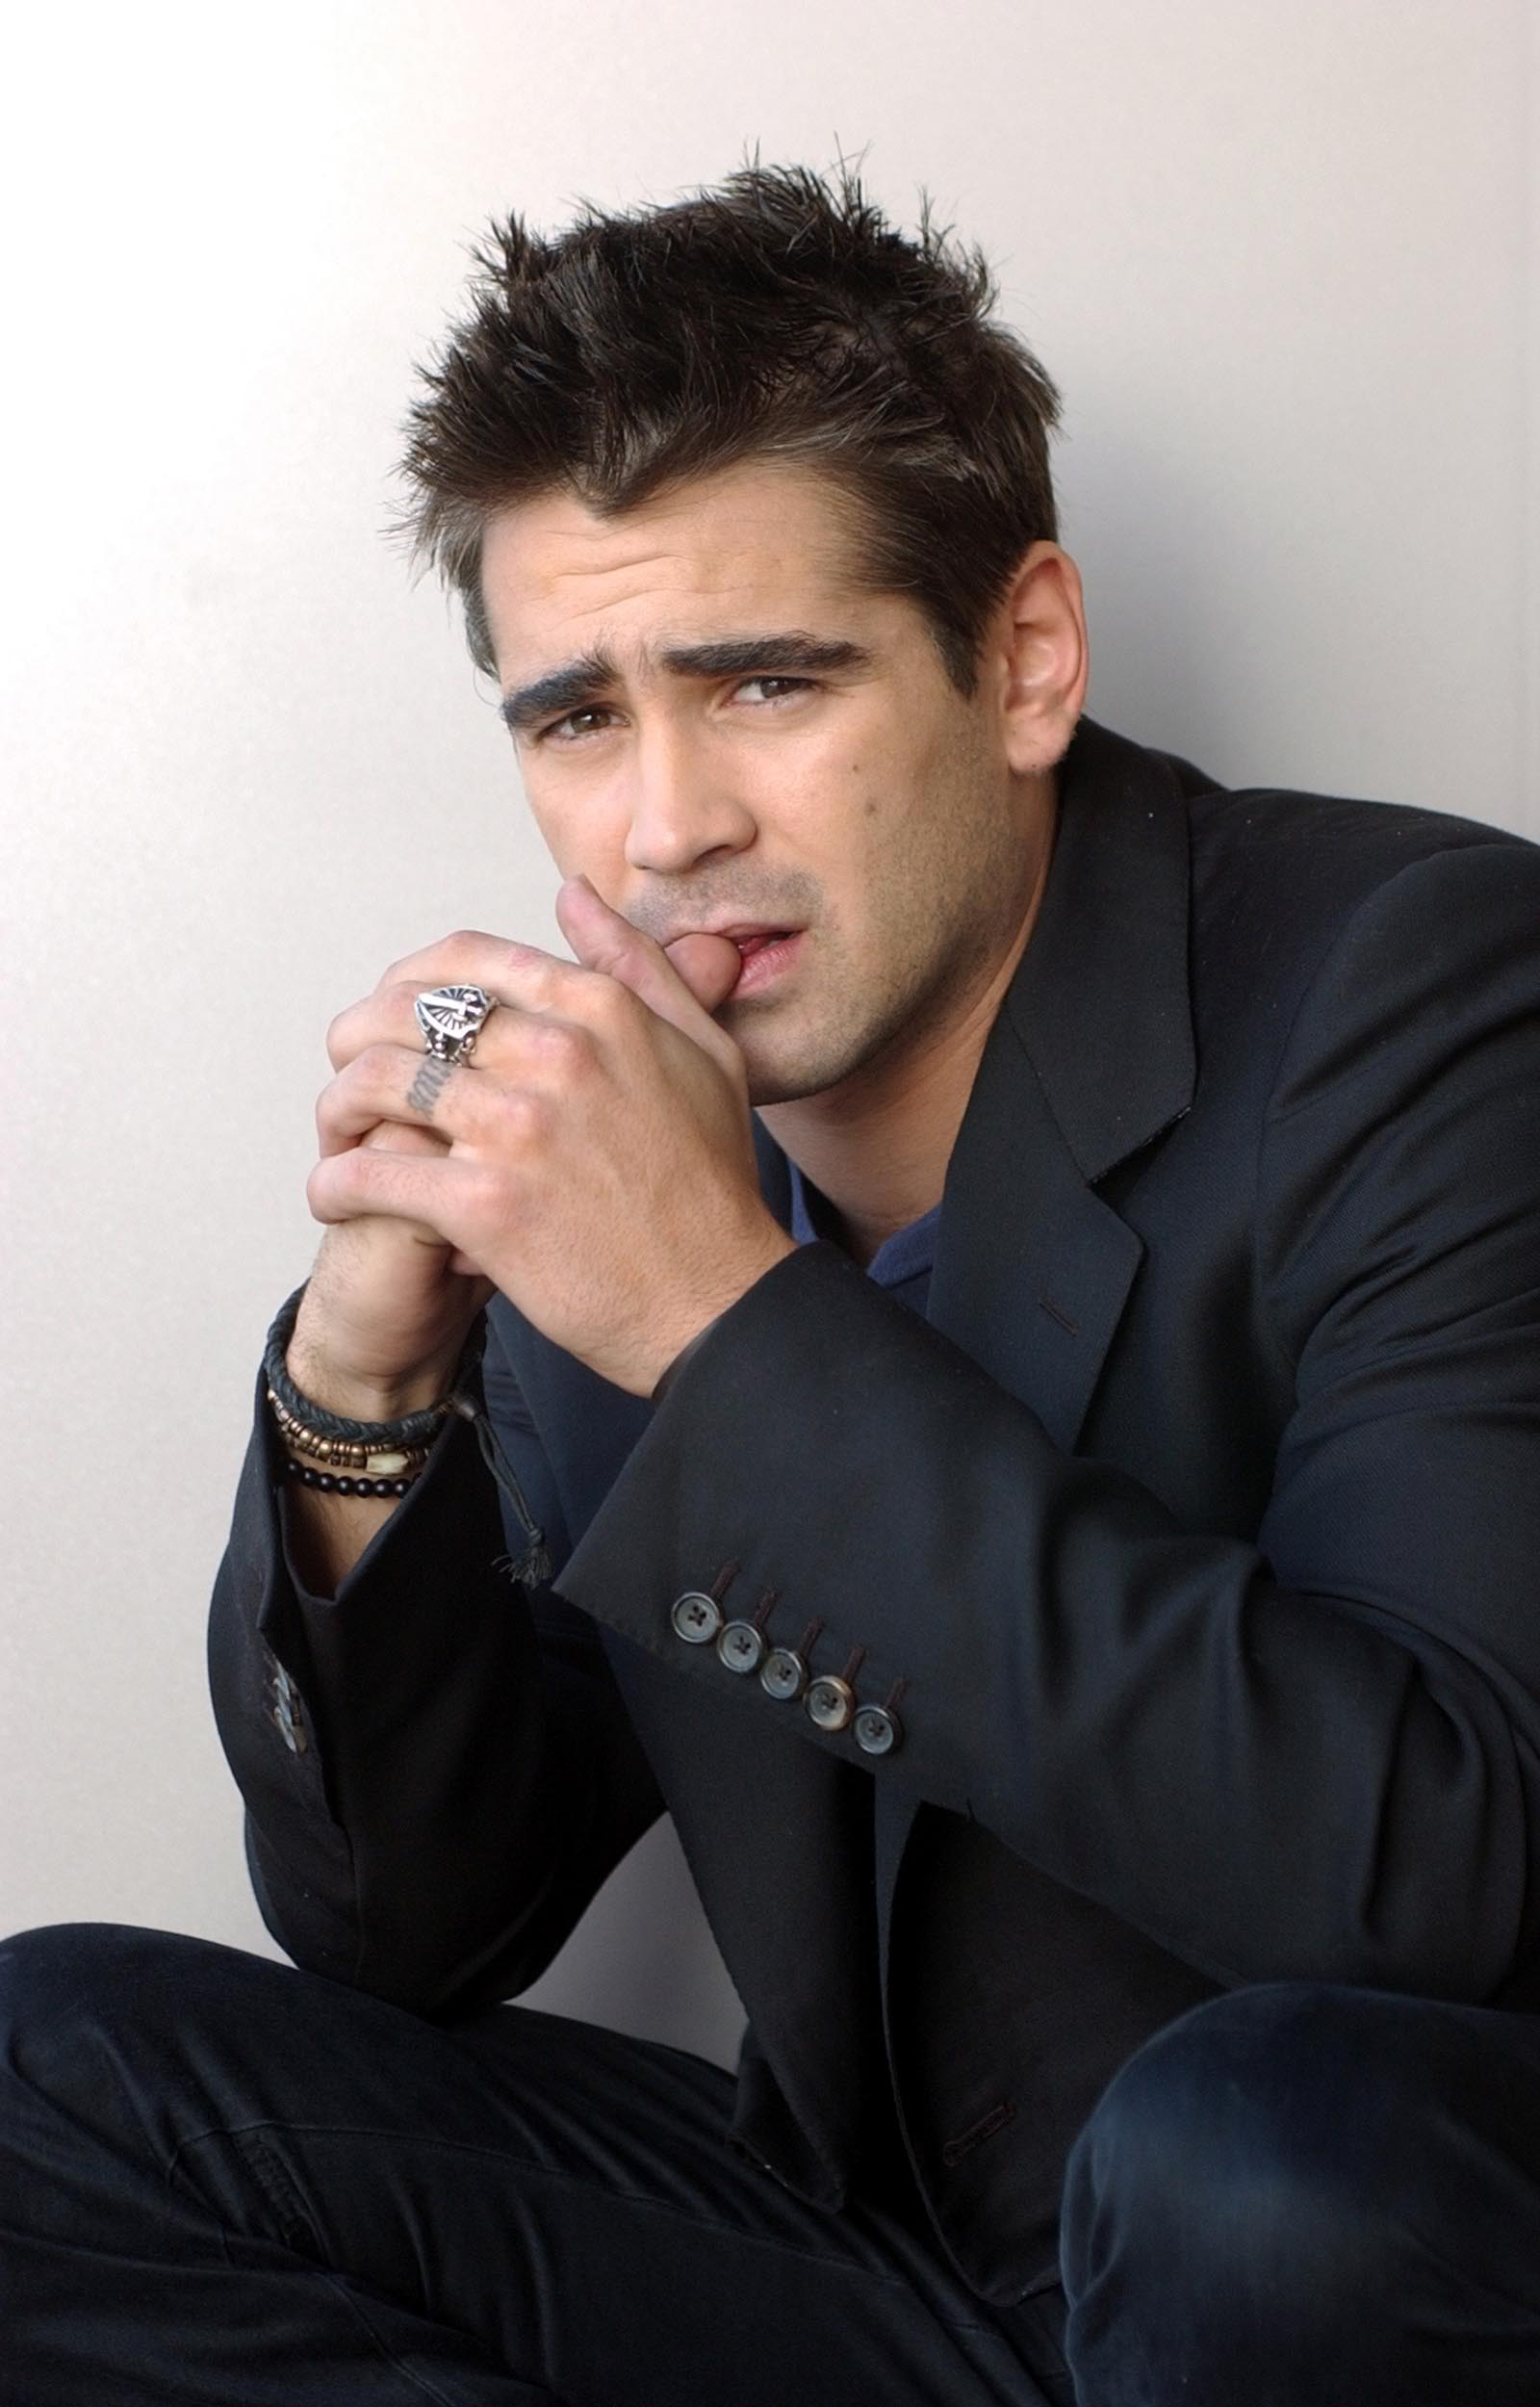 Hd Wallpapers For Pc 1080p Free Download Pack Colin Farrell Wallpapers High Quality Download Free